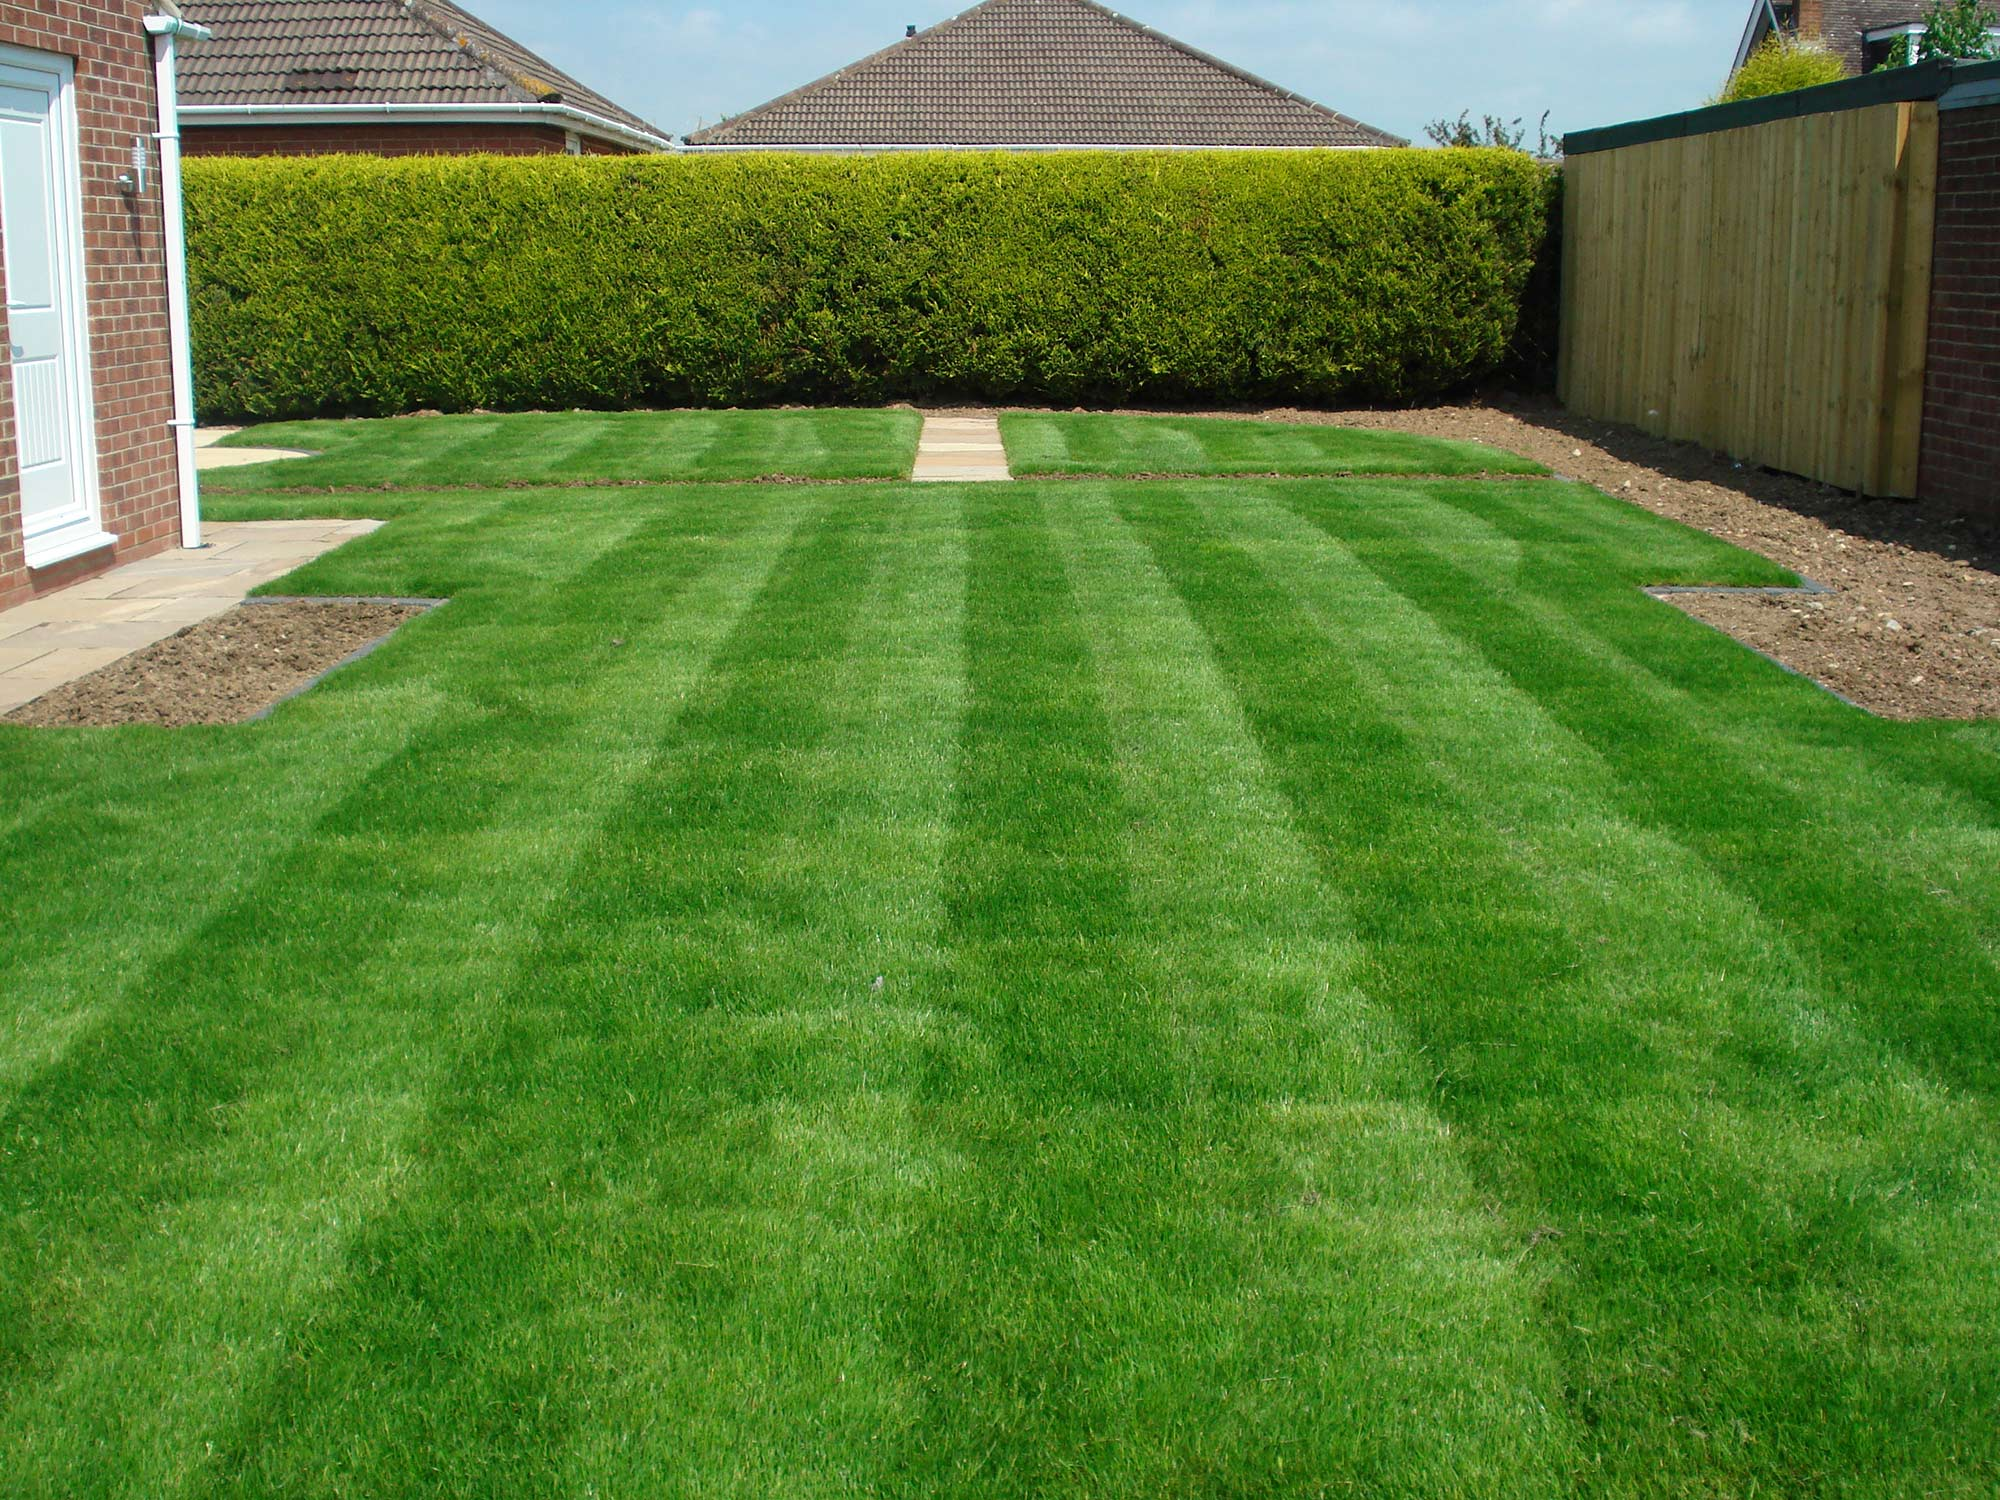 Turf Pro | For all your yard needs